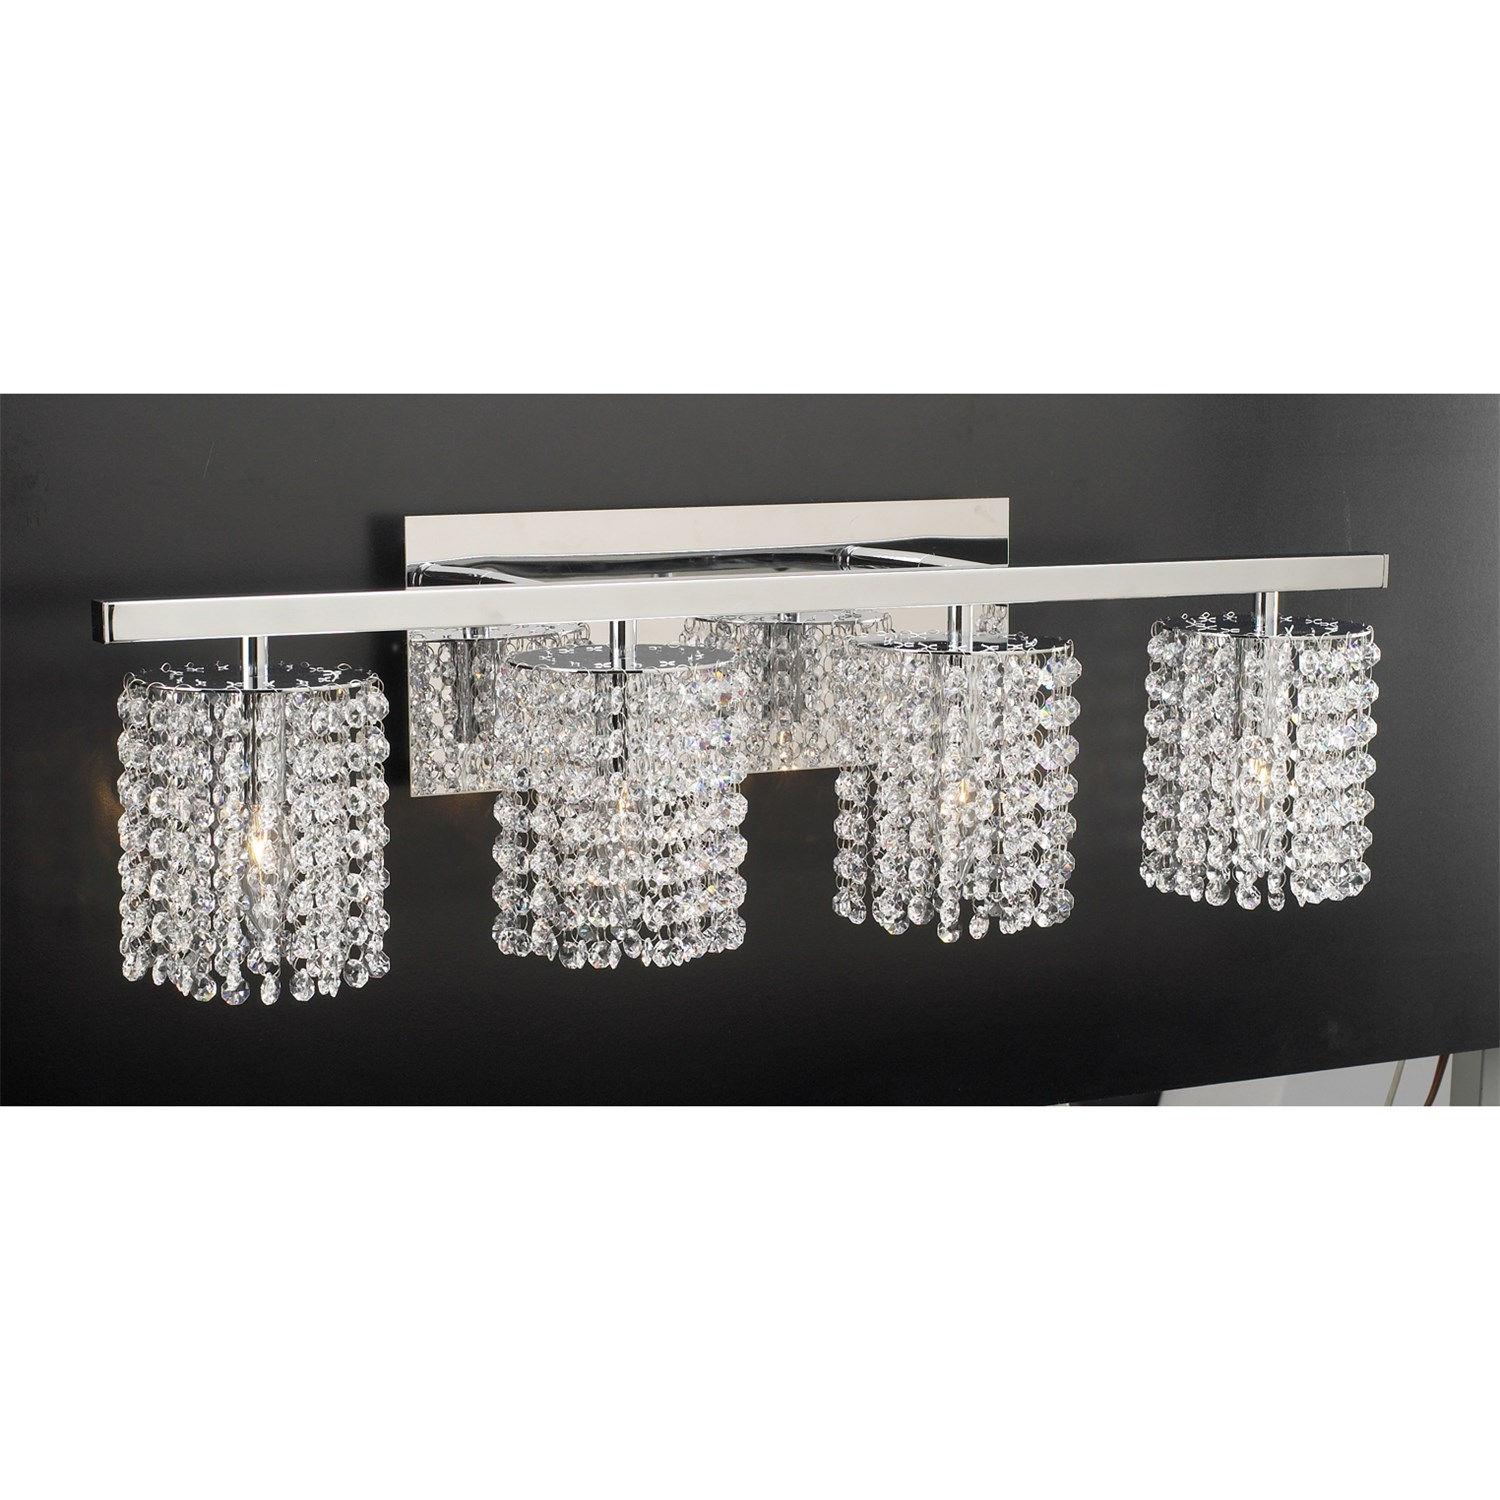 Plc Lighting 72196pc Rigga 4 Light Bathroom Vanity Light Fixture In Chandelier Bathroom Vanity Lighting (Image 24 of 25)